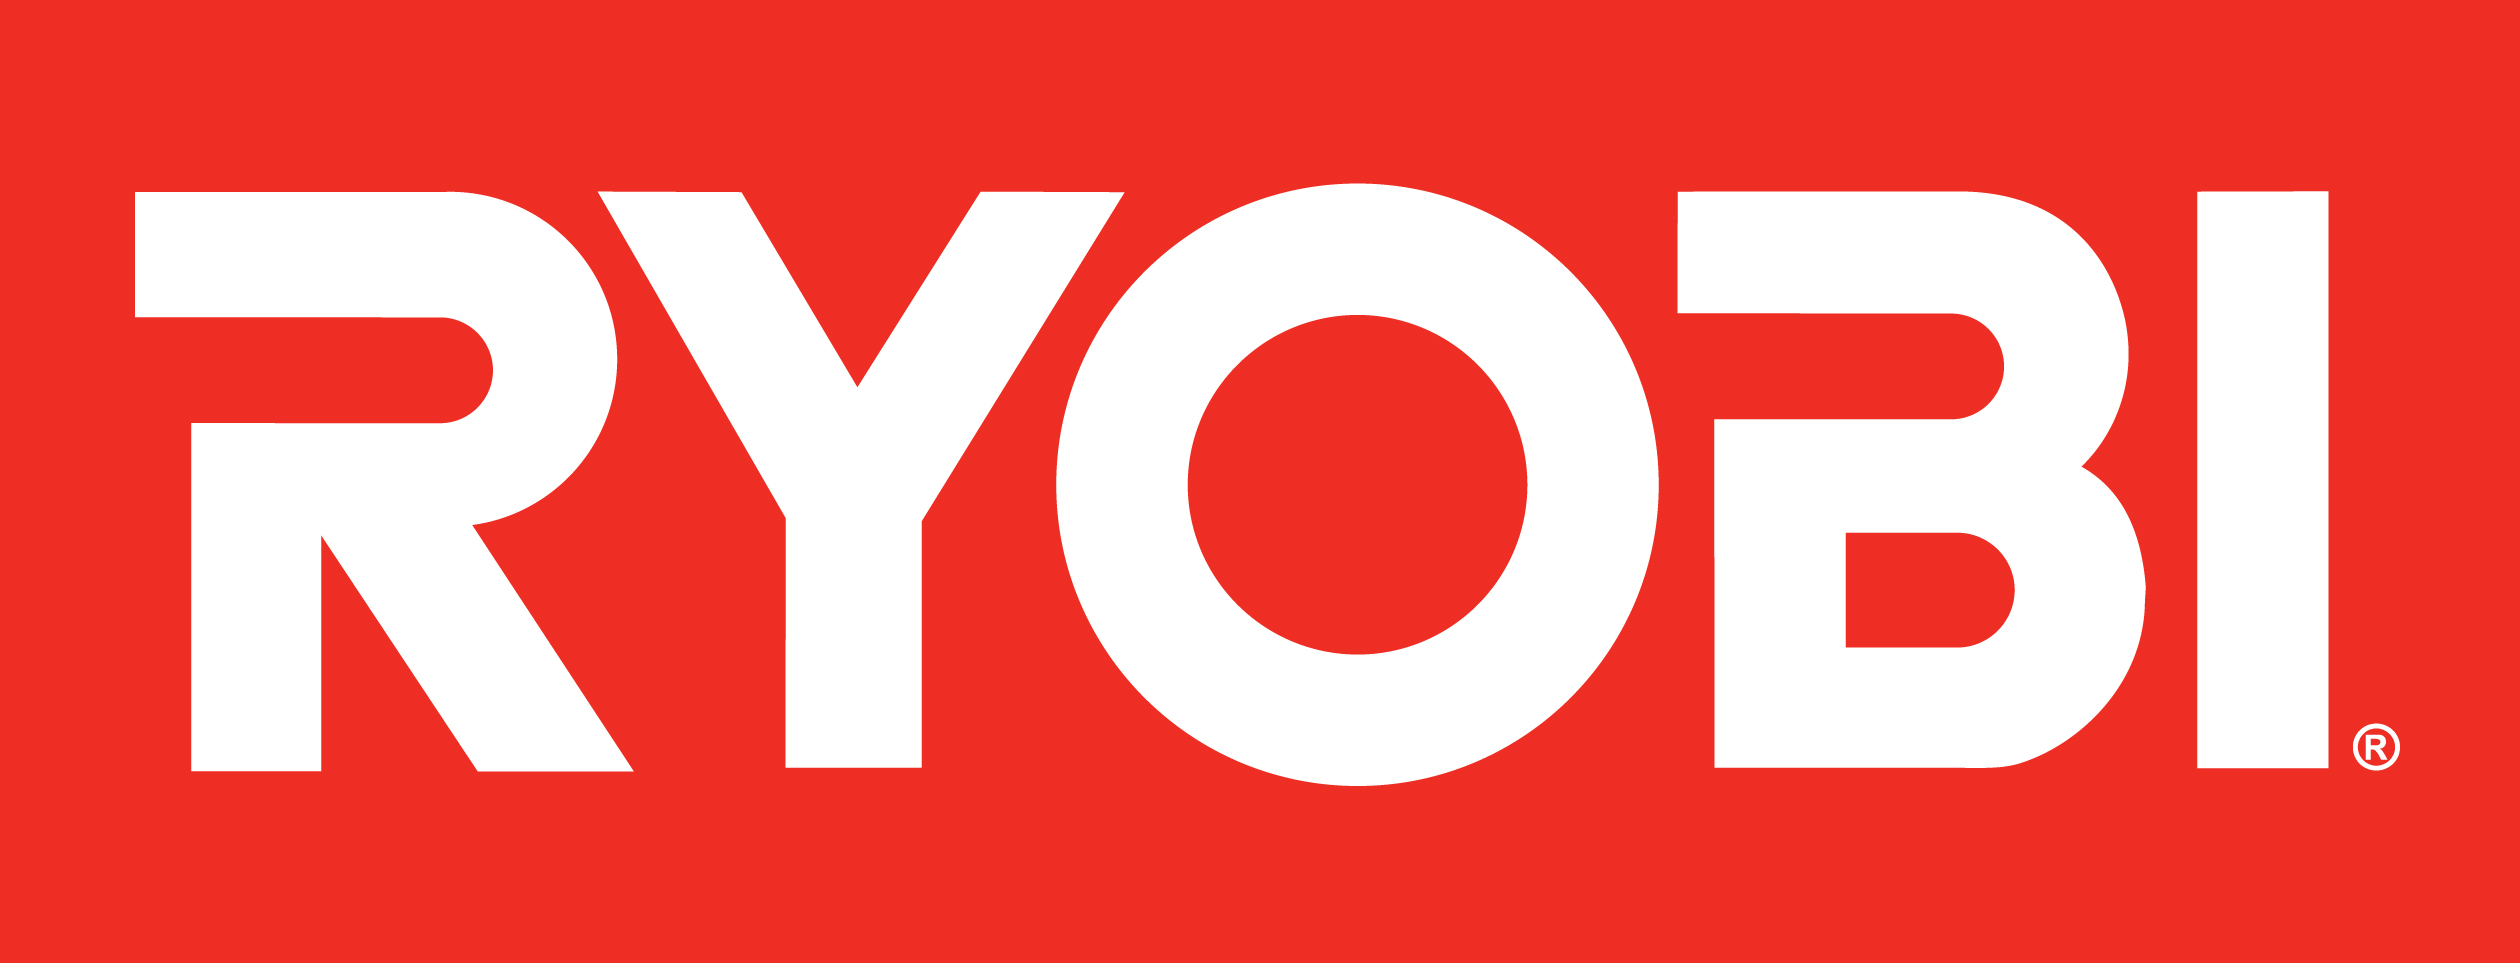 Welcome to the Ryobi Parts Portal by OrderTree